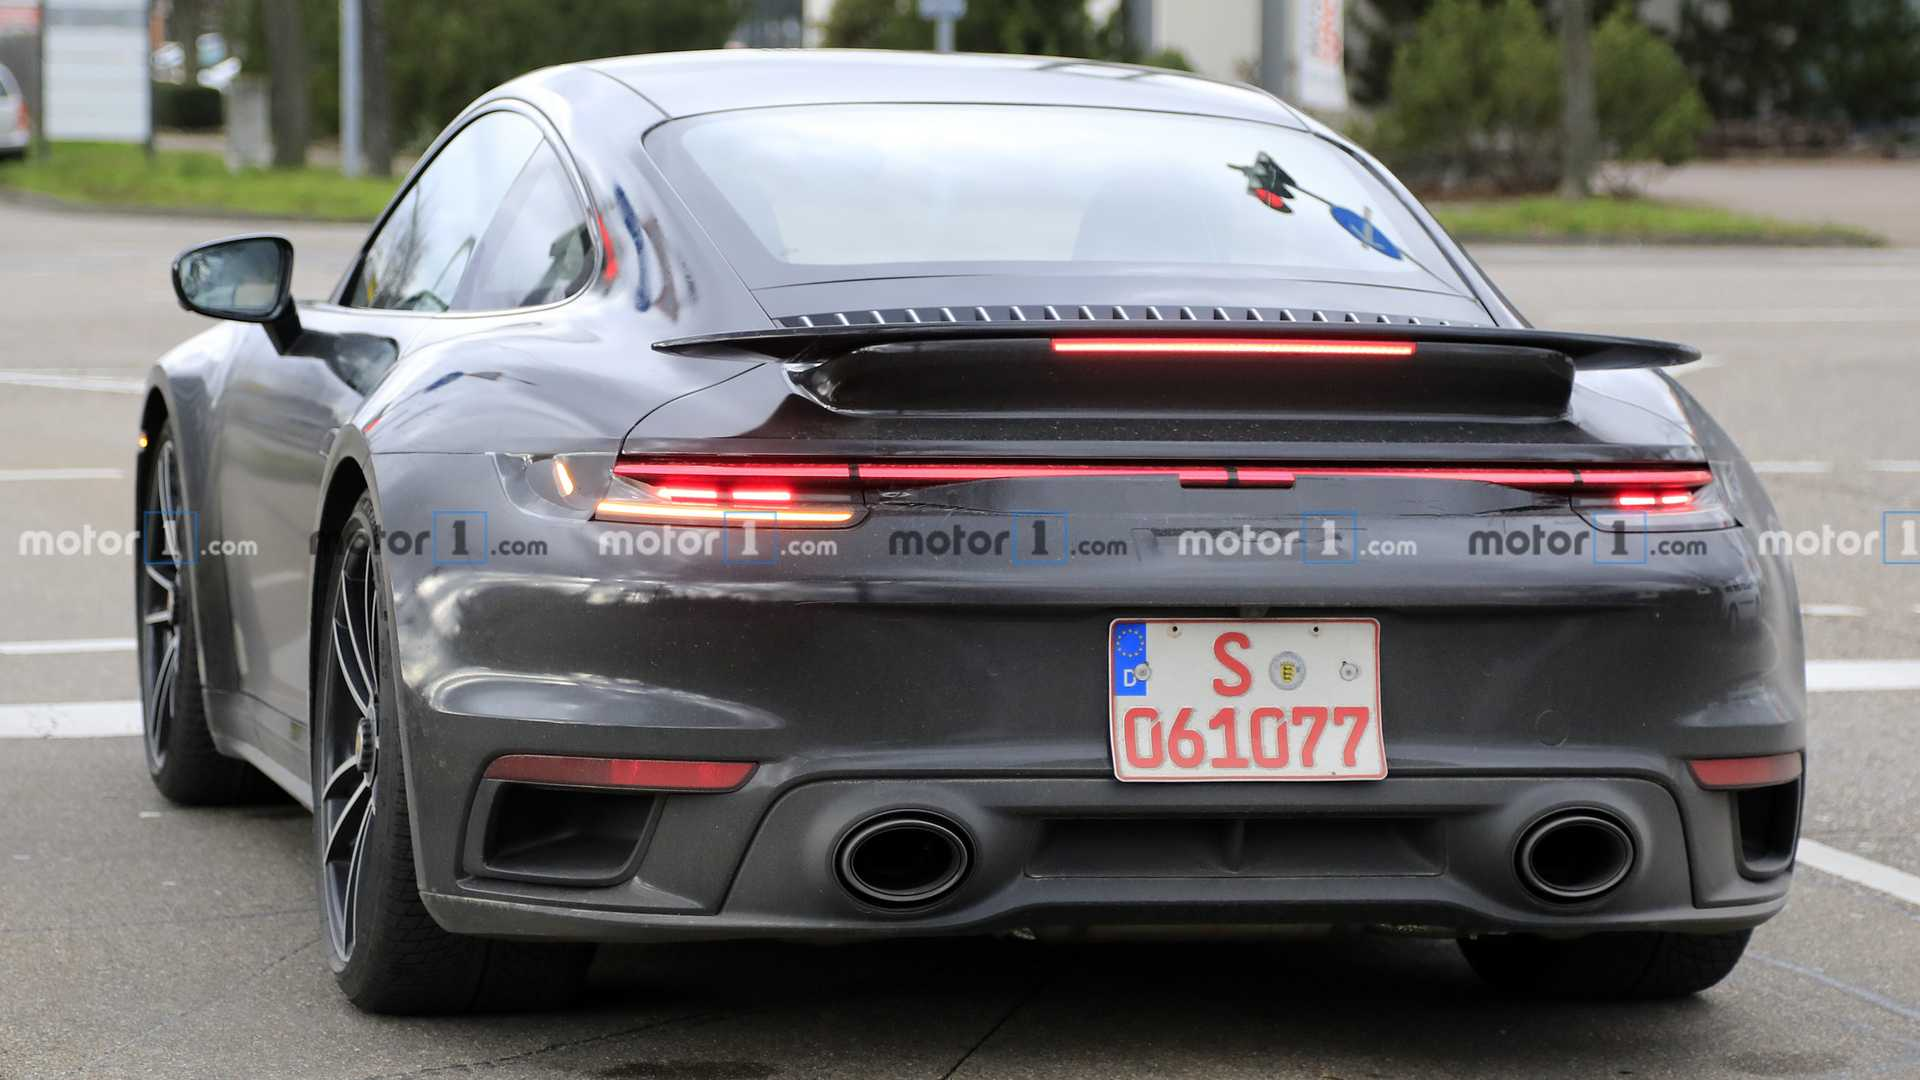 porsche-911-turbo-spy-photo-4.jpg